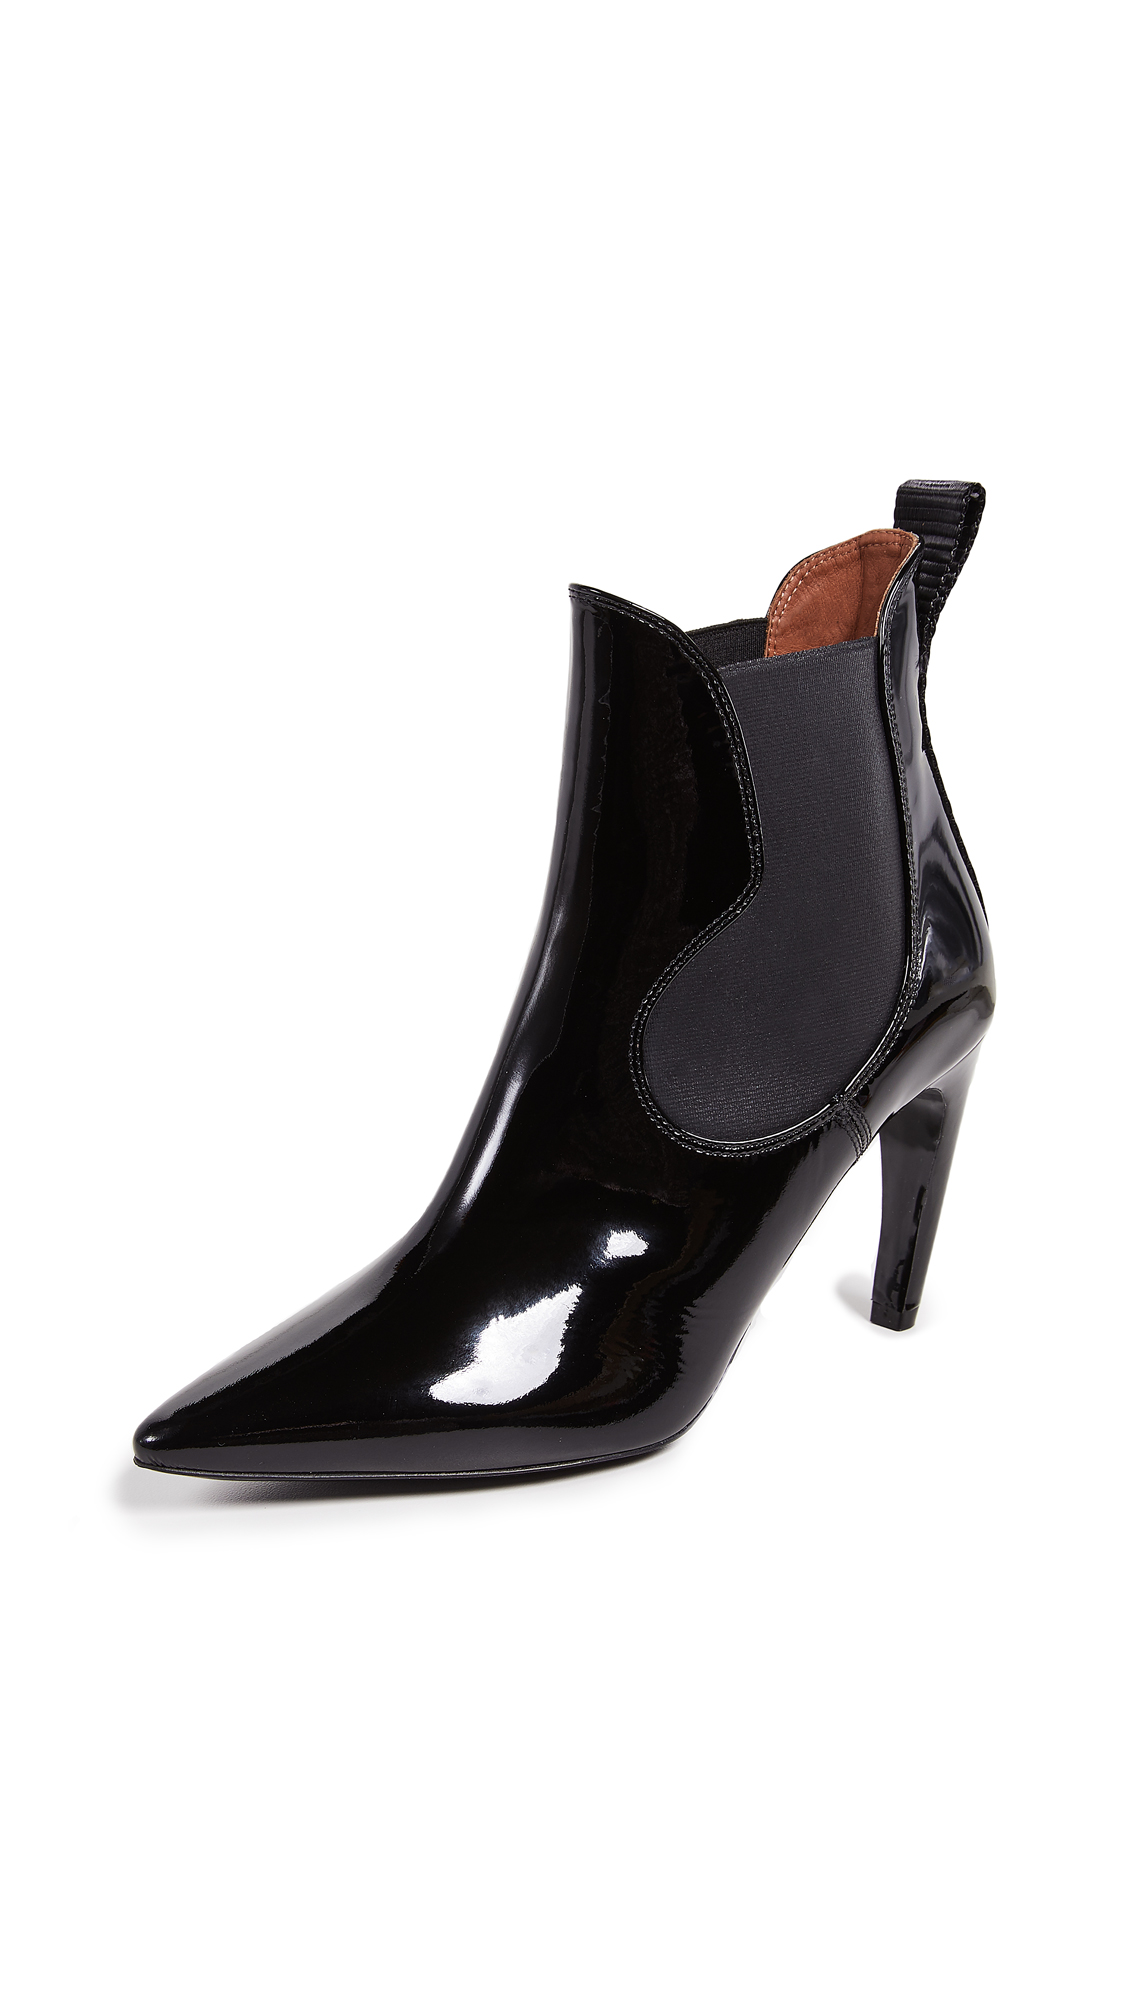 Proenza Schouler Chelsea High Heel Booties - Black